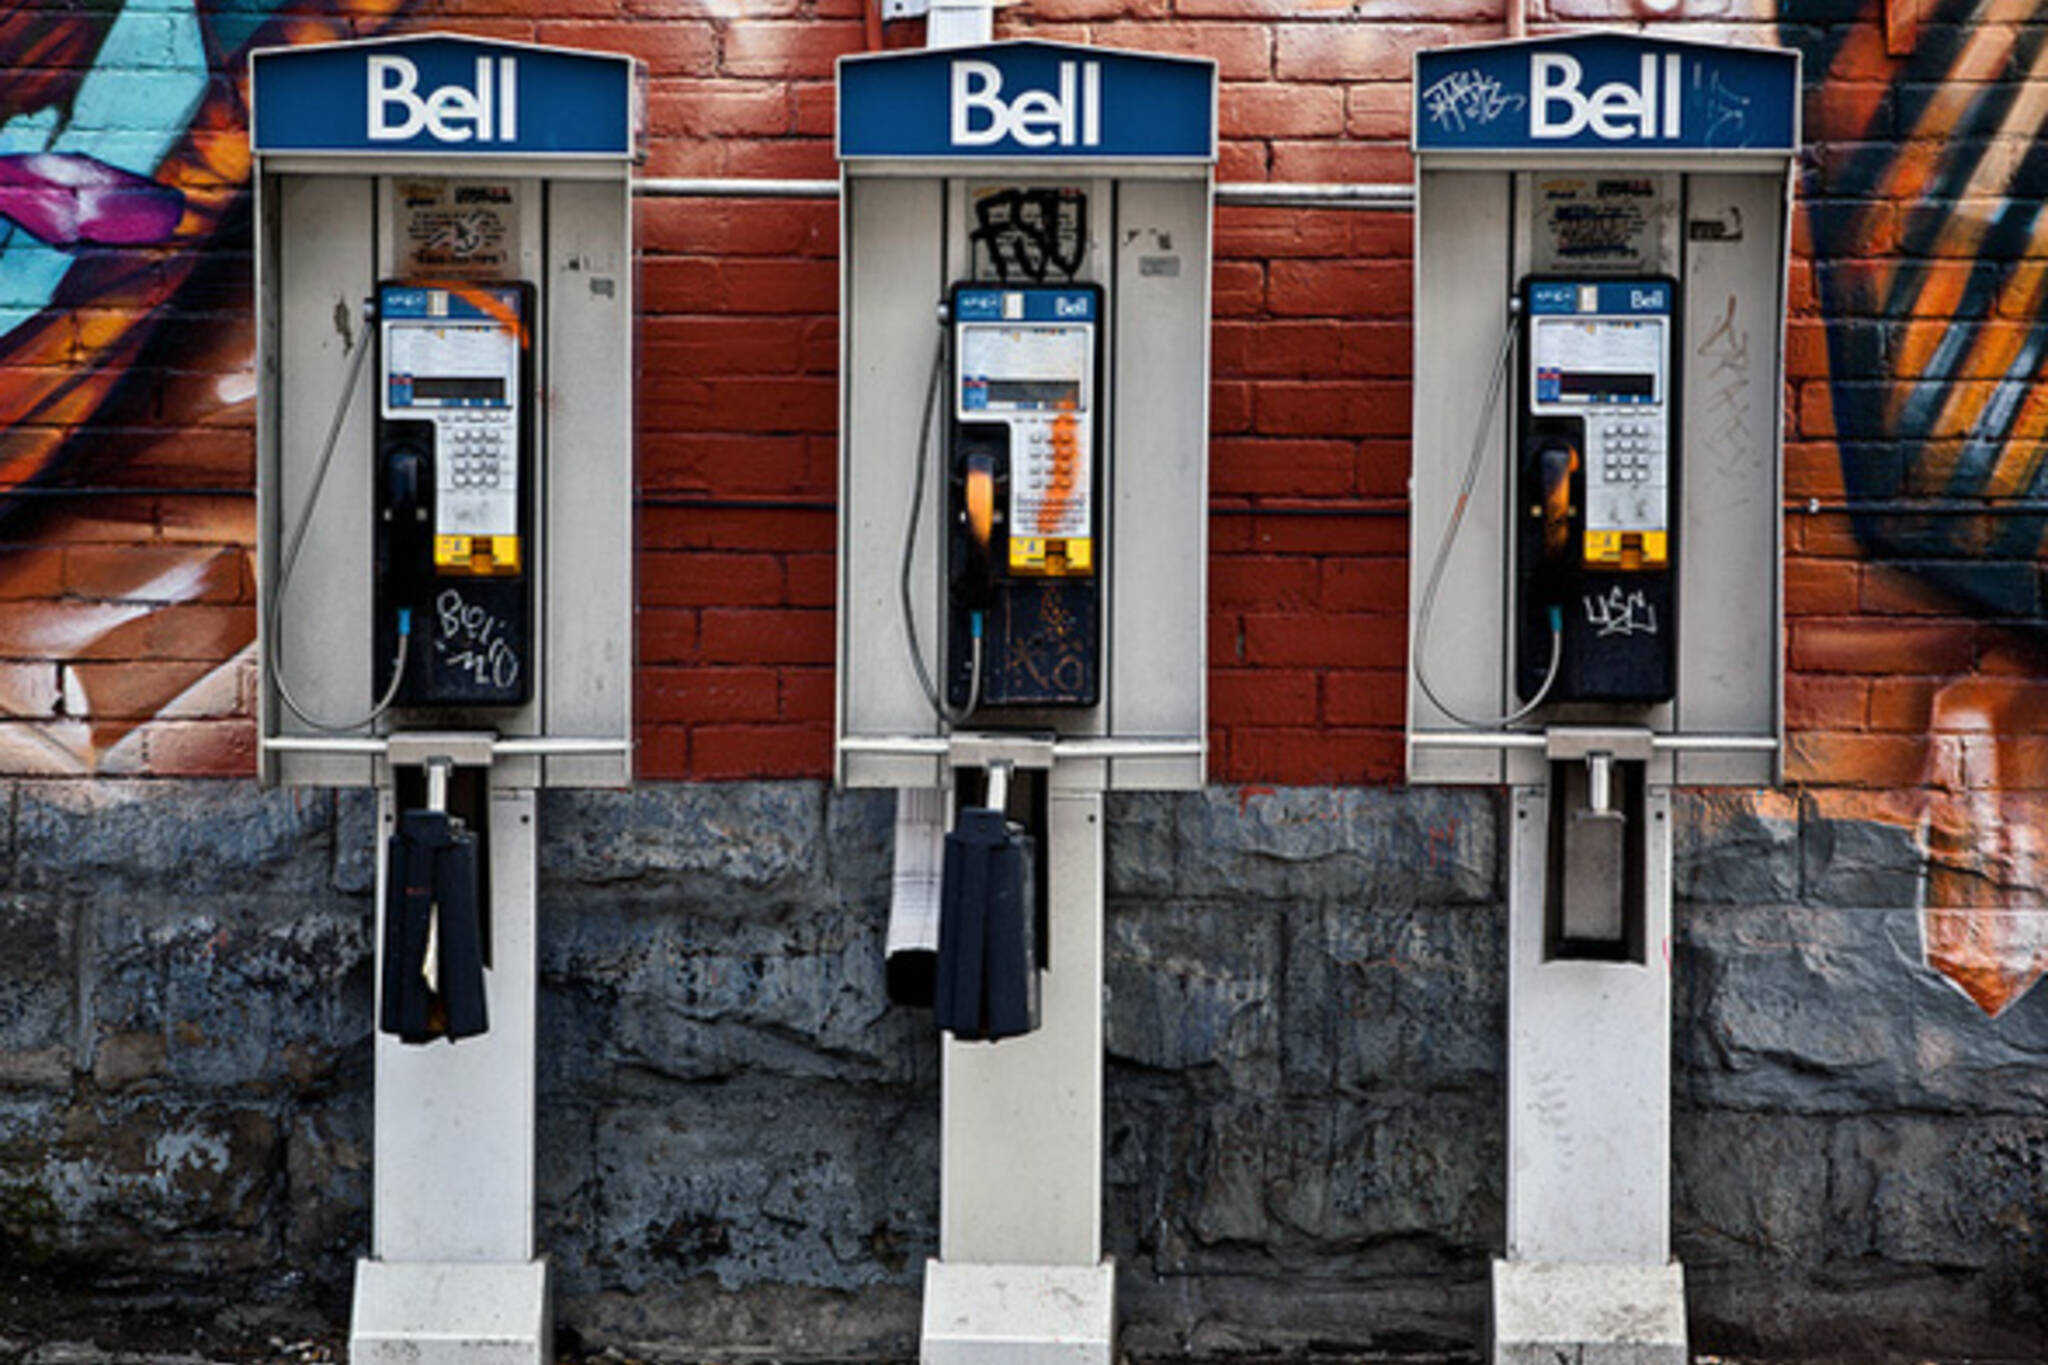 Phone booth Toronto Bell